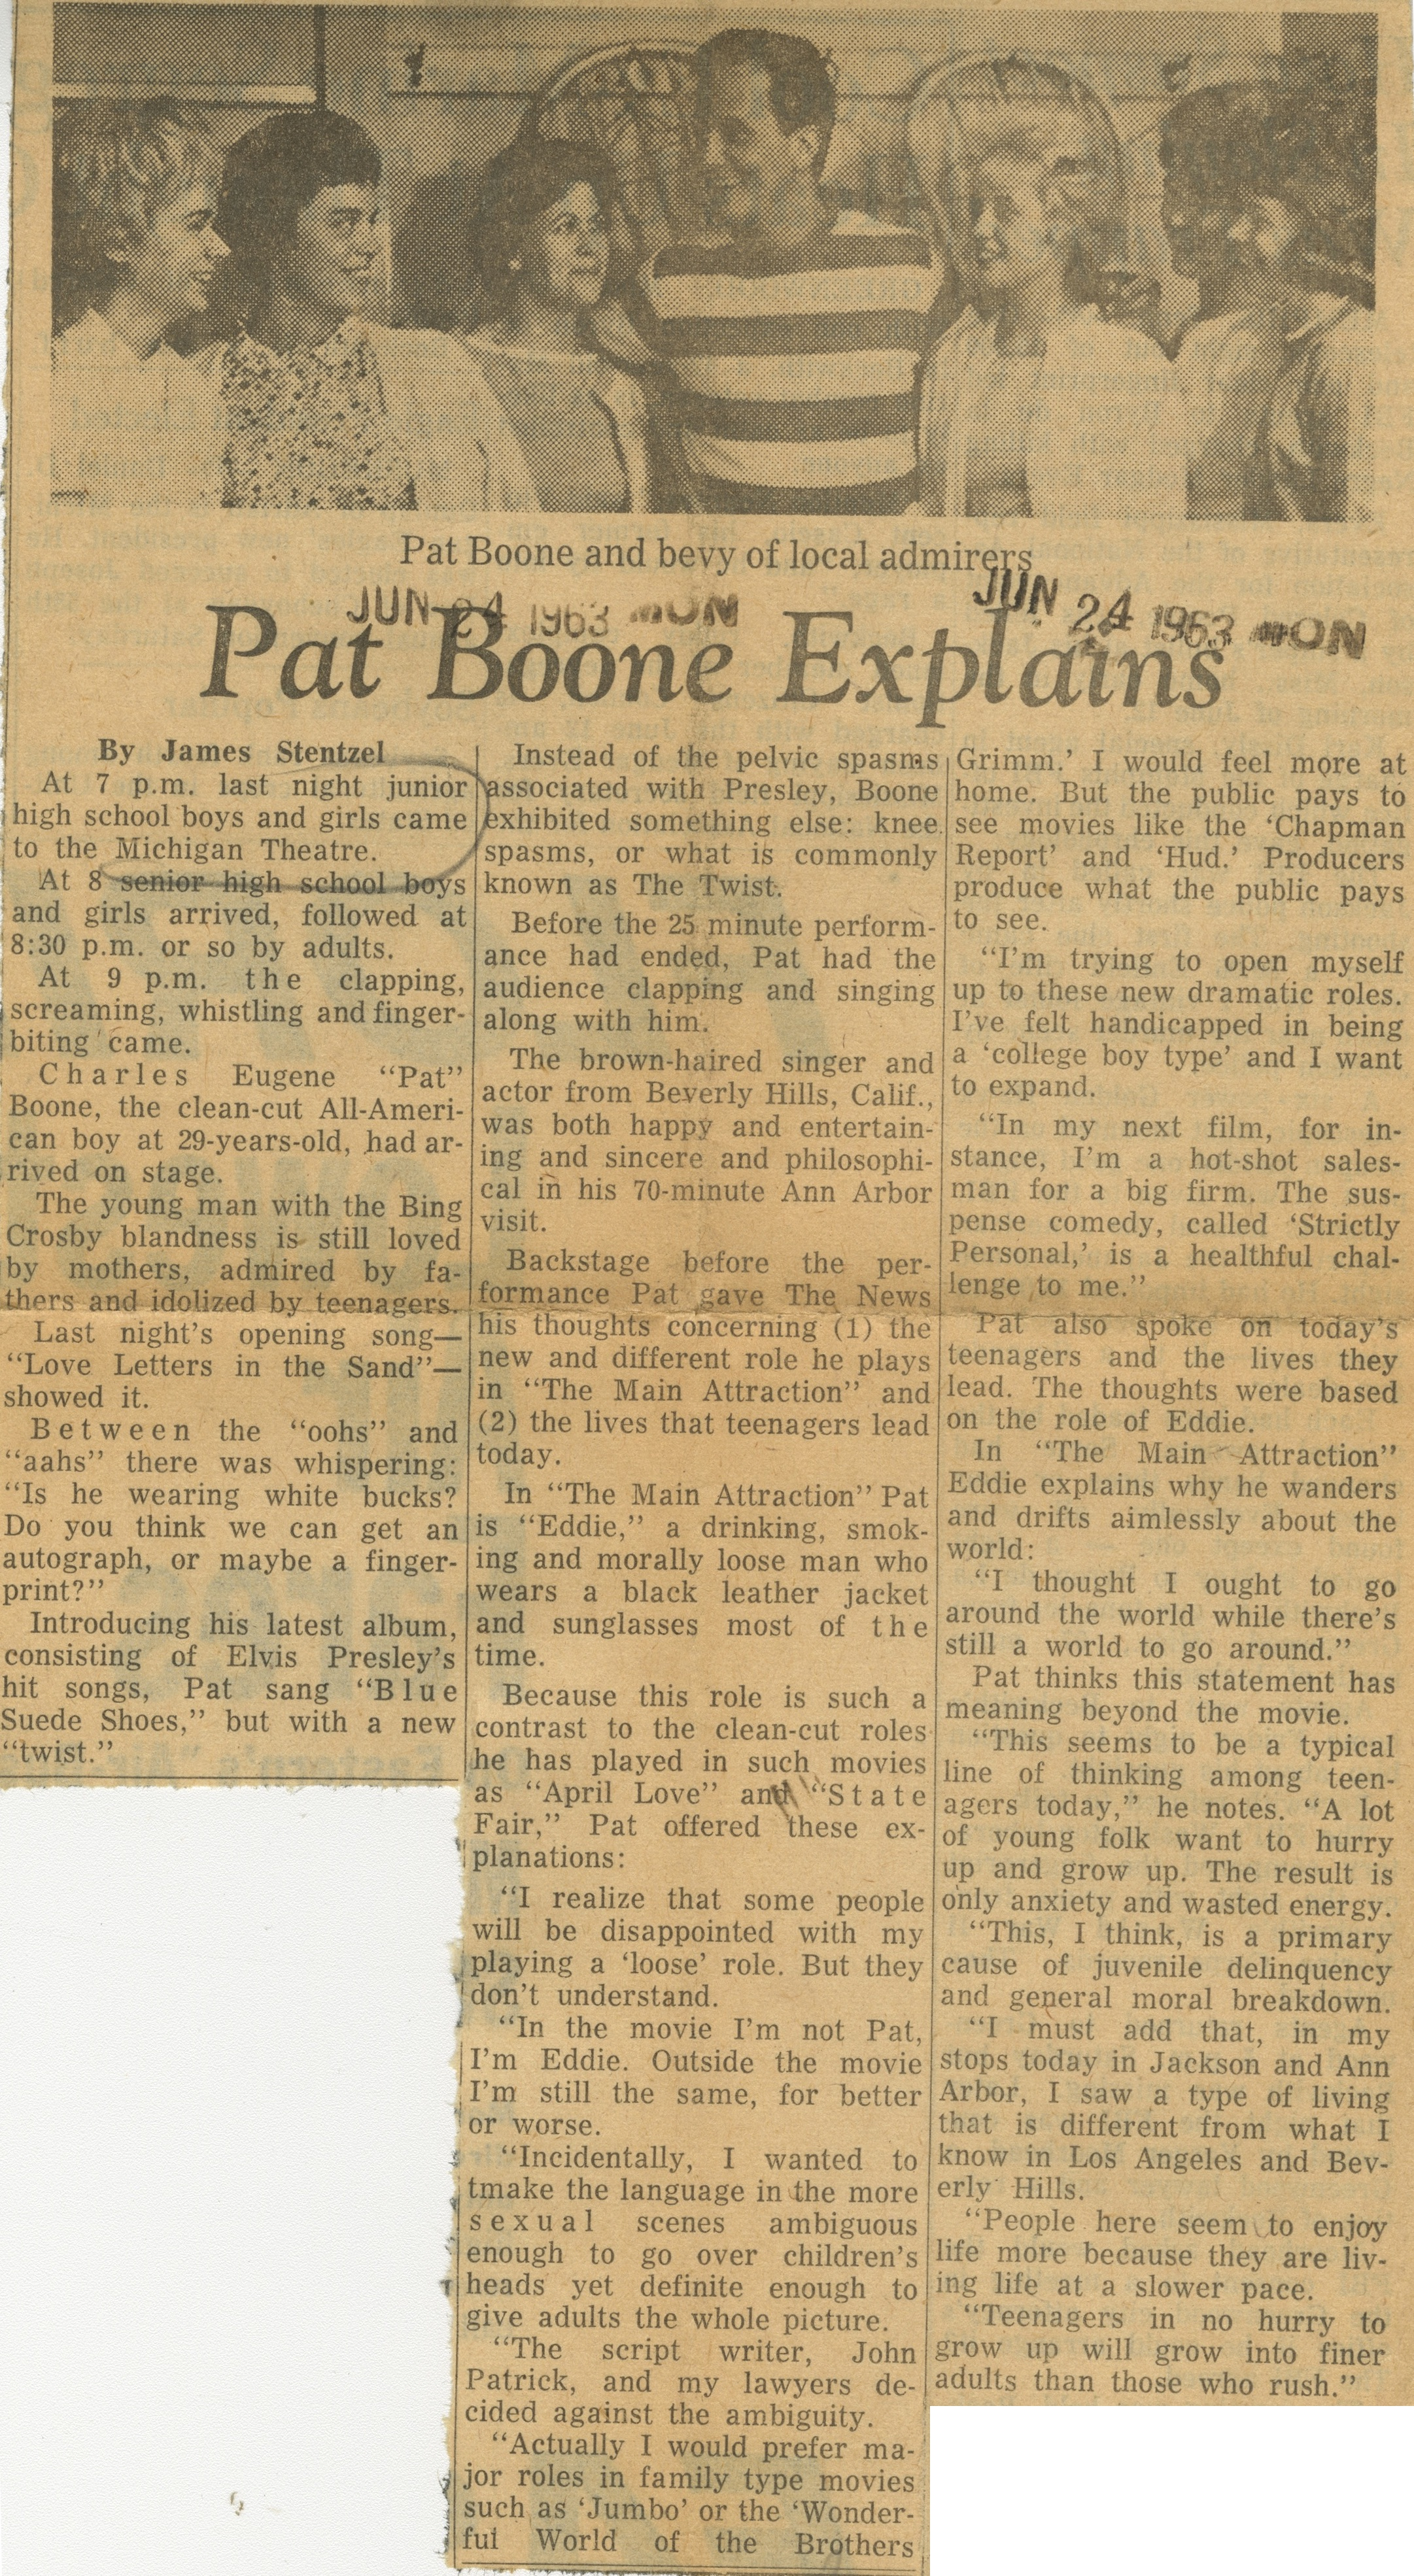 Pat Boone Explains image